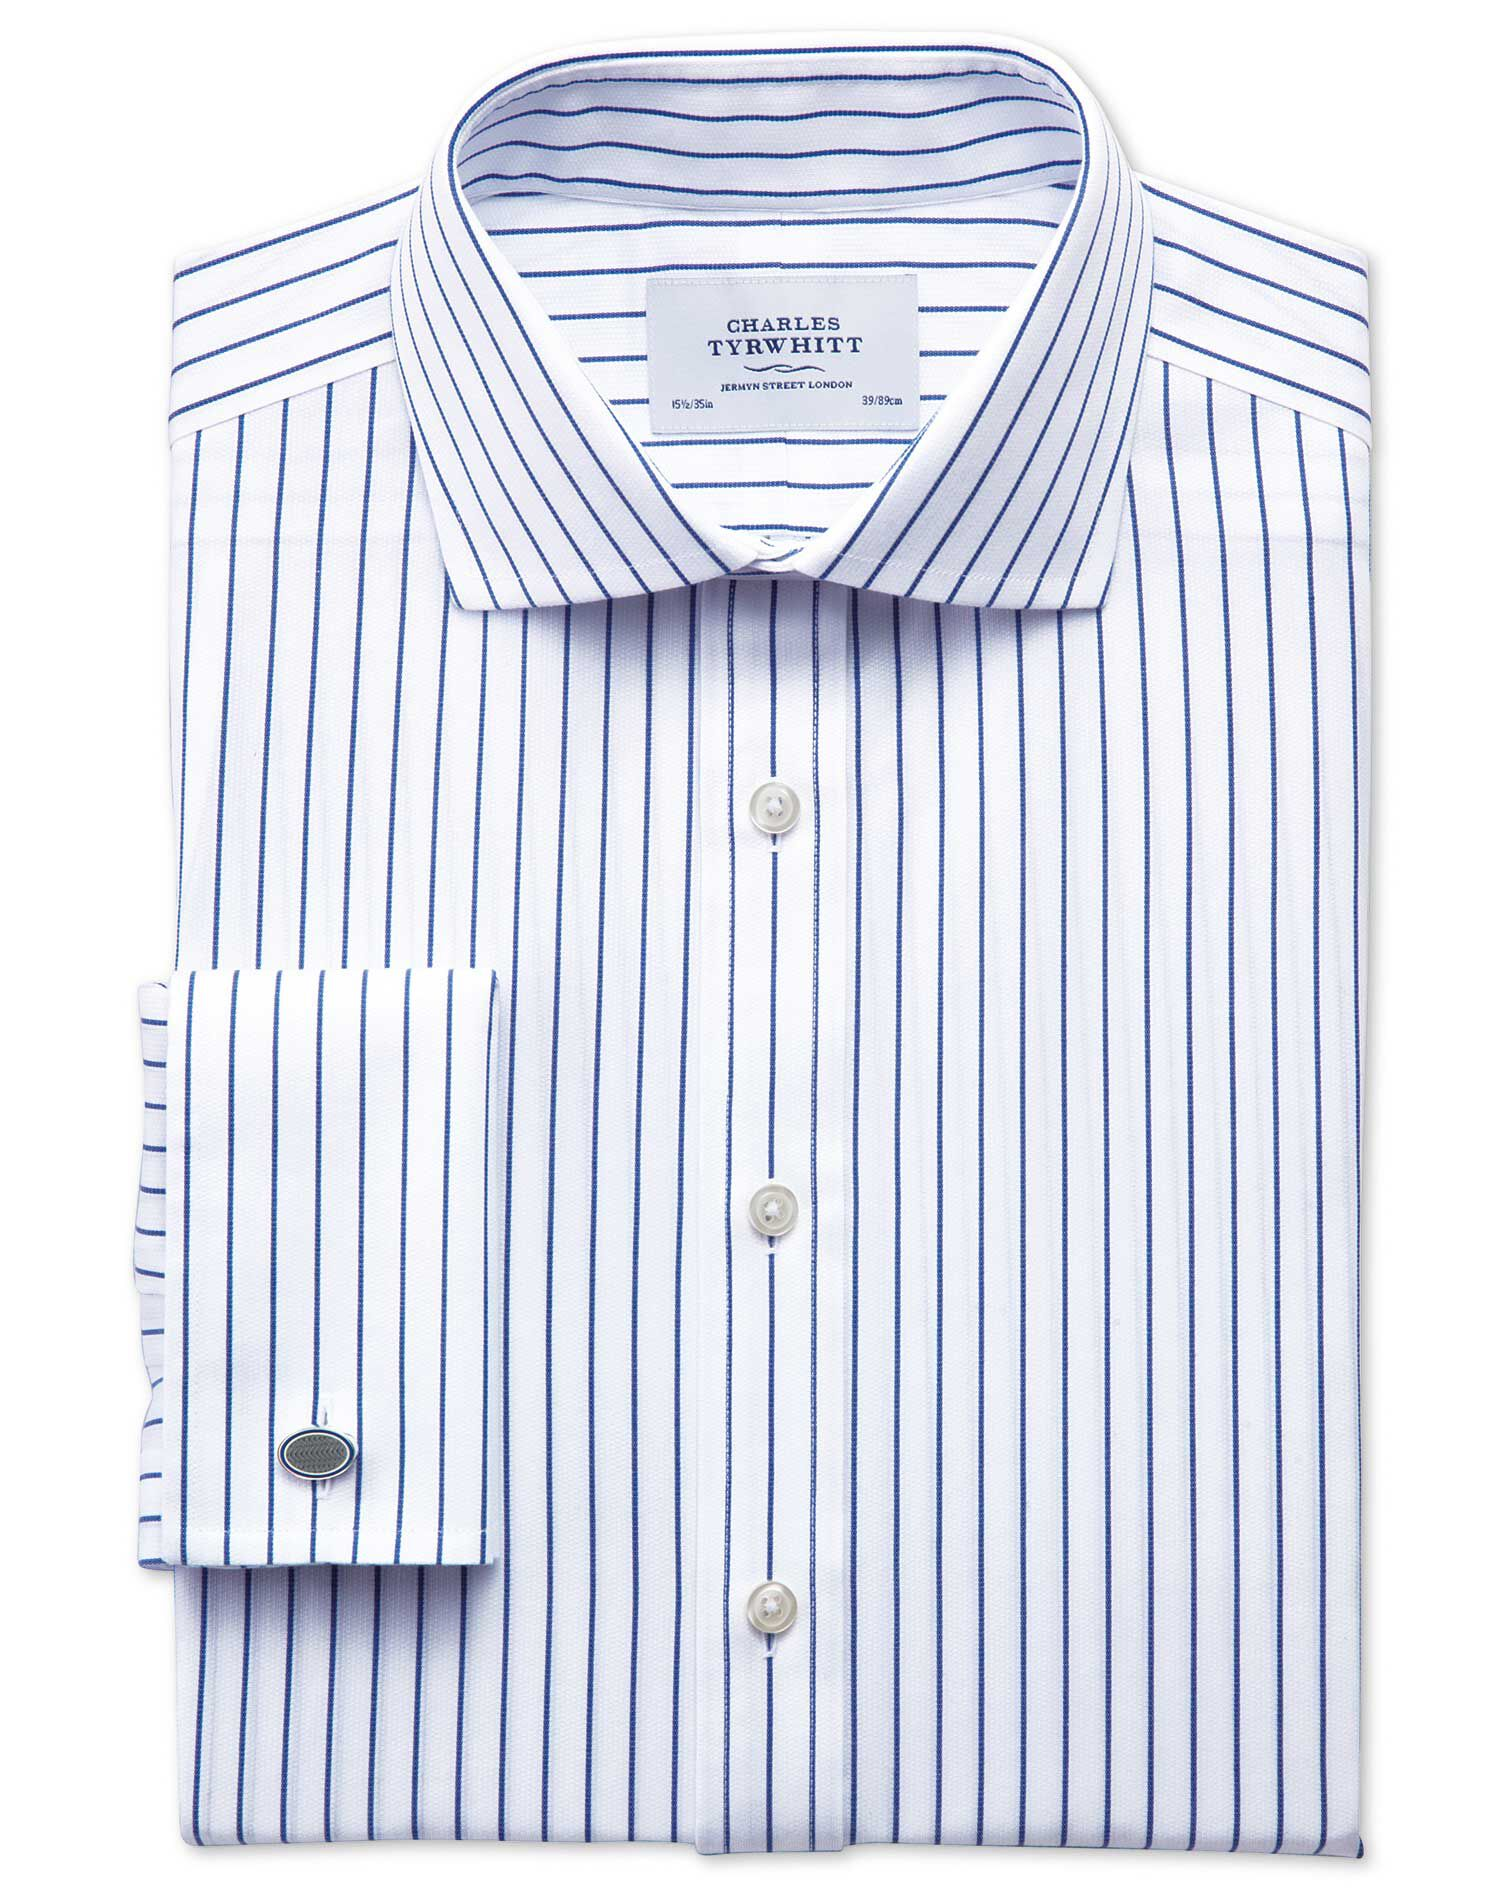 Extra Slim Fit Cutaway Collar Non-Iron Stripe White and Navy Cotton Formal Shirt Single Cuff Size 16